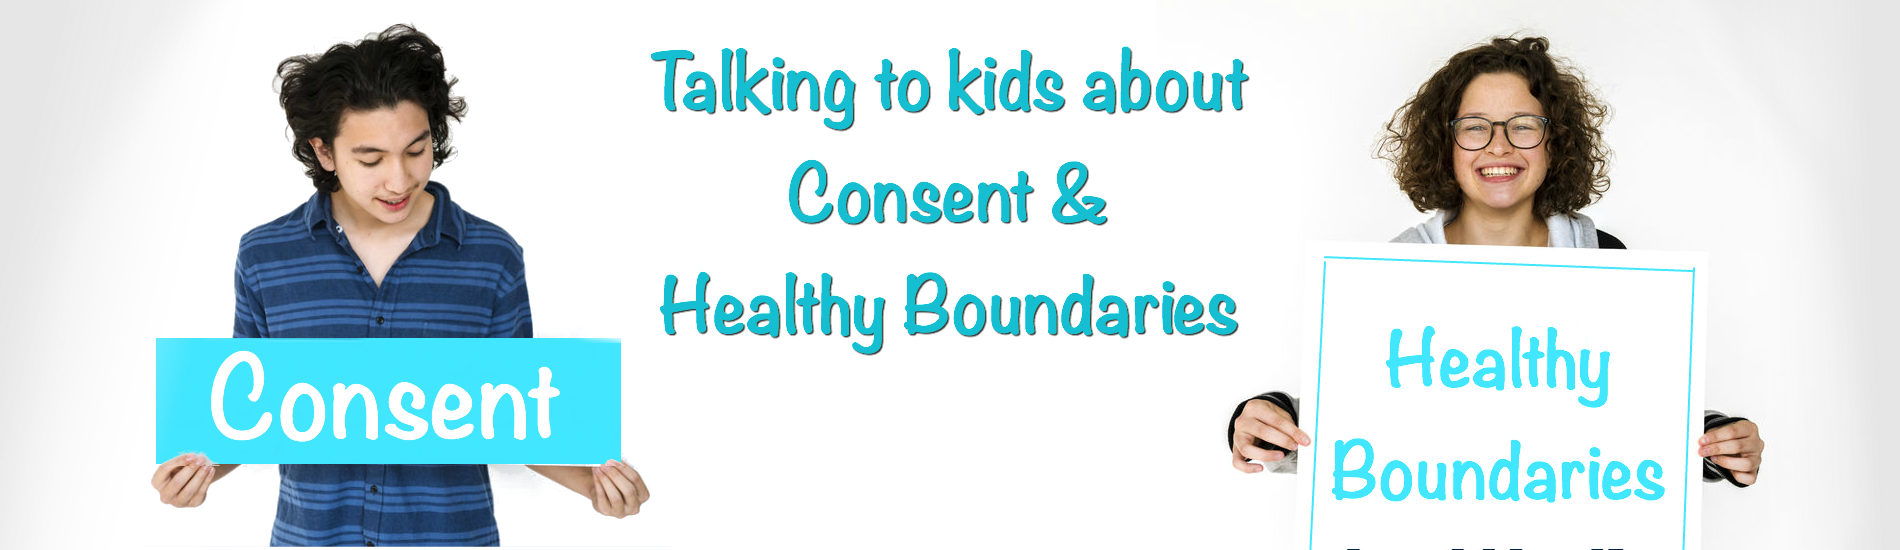 consent healthy boundaries